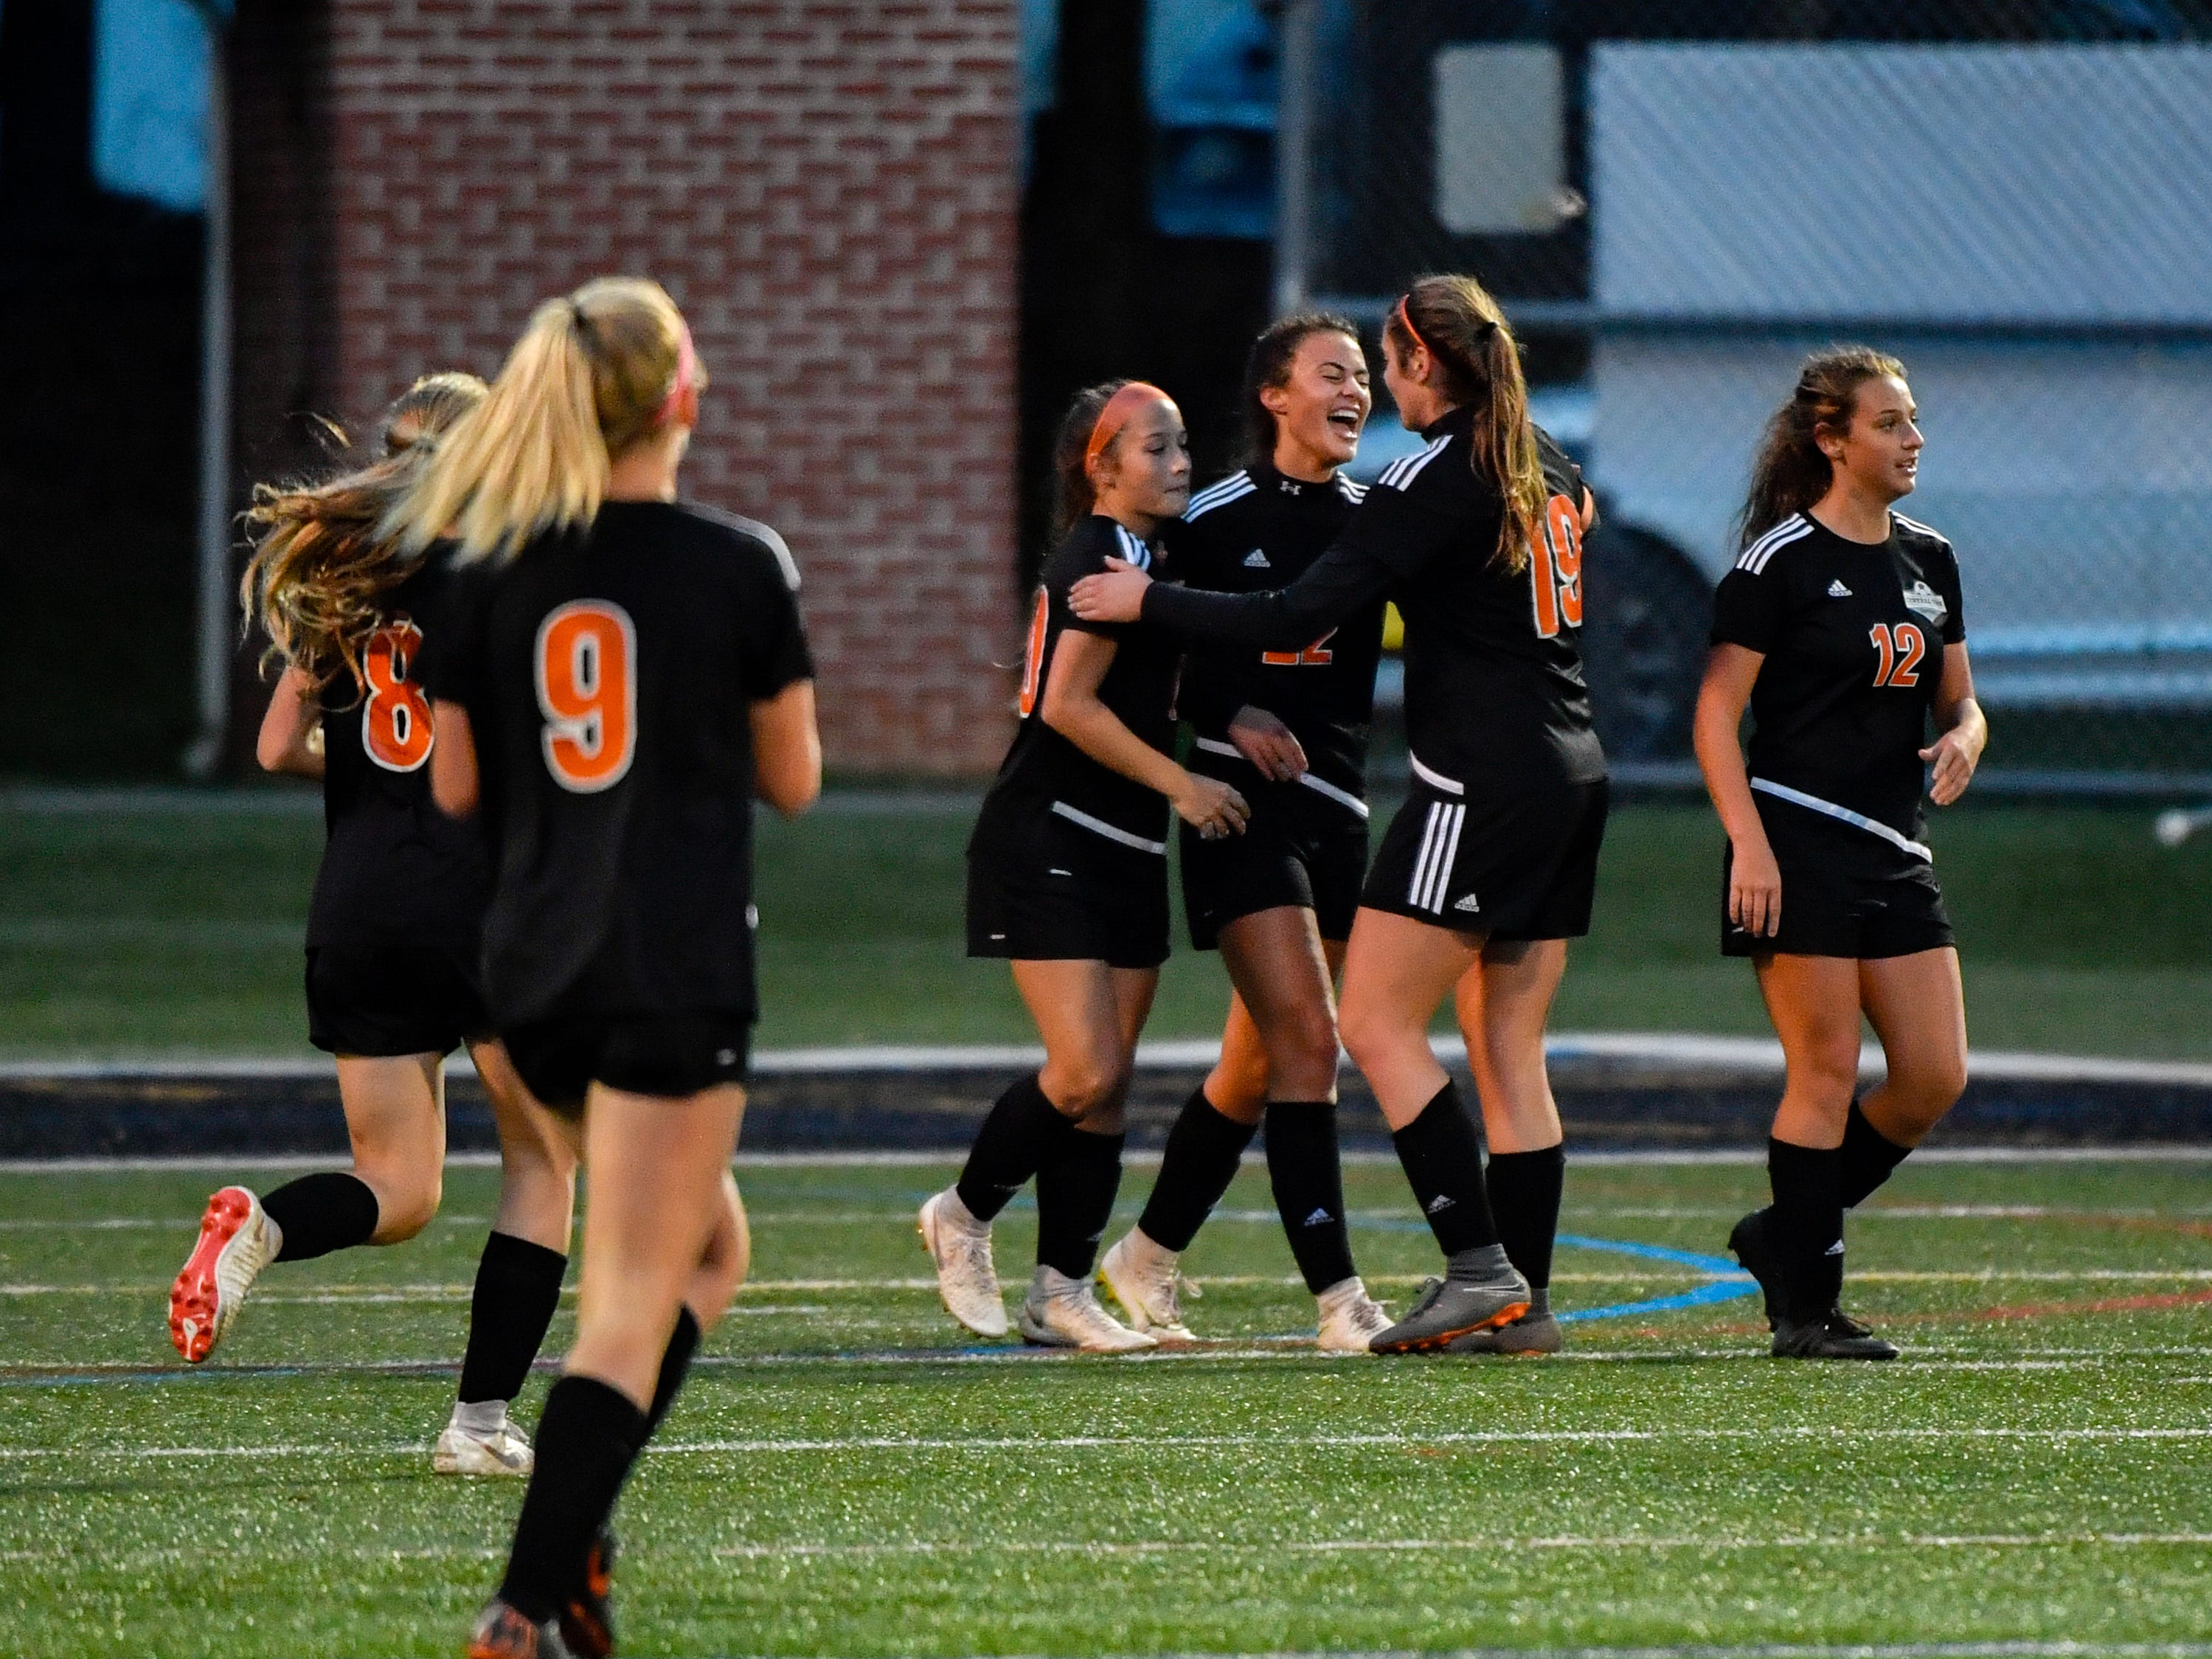 Central York celebrates a goal during the girls soccer game between Littlestown and Central York, October 16, 2018. The Panthers beat the Bolts 6-1.